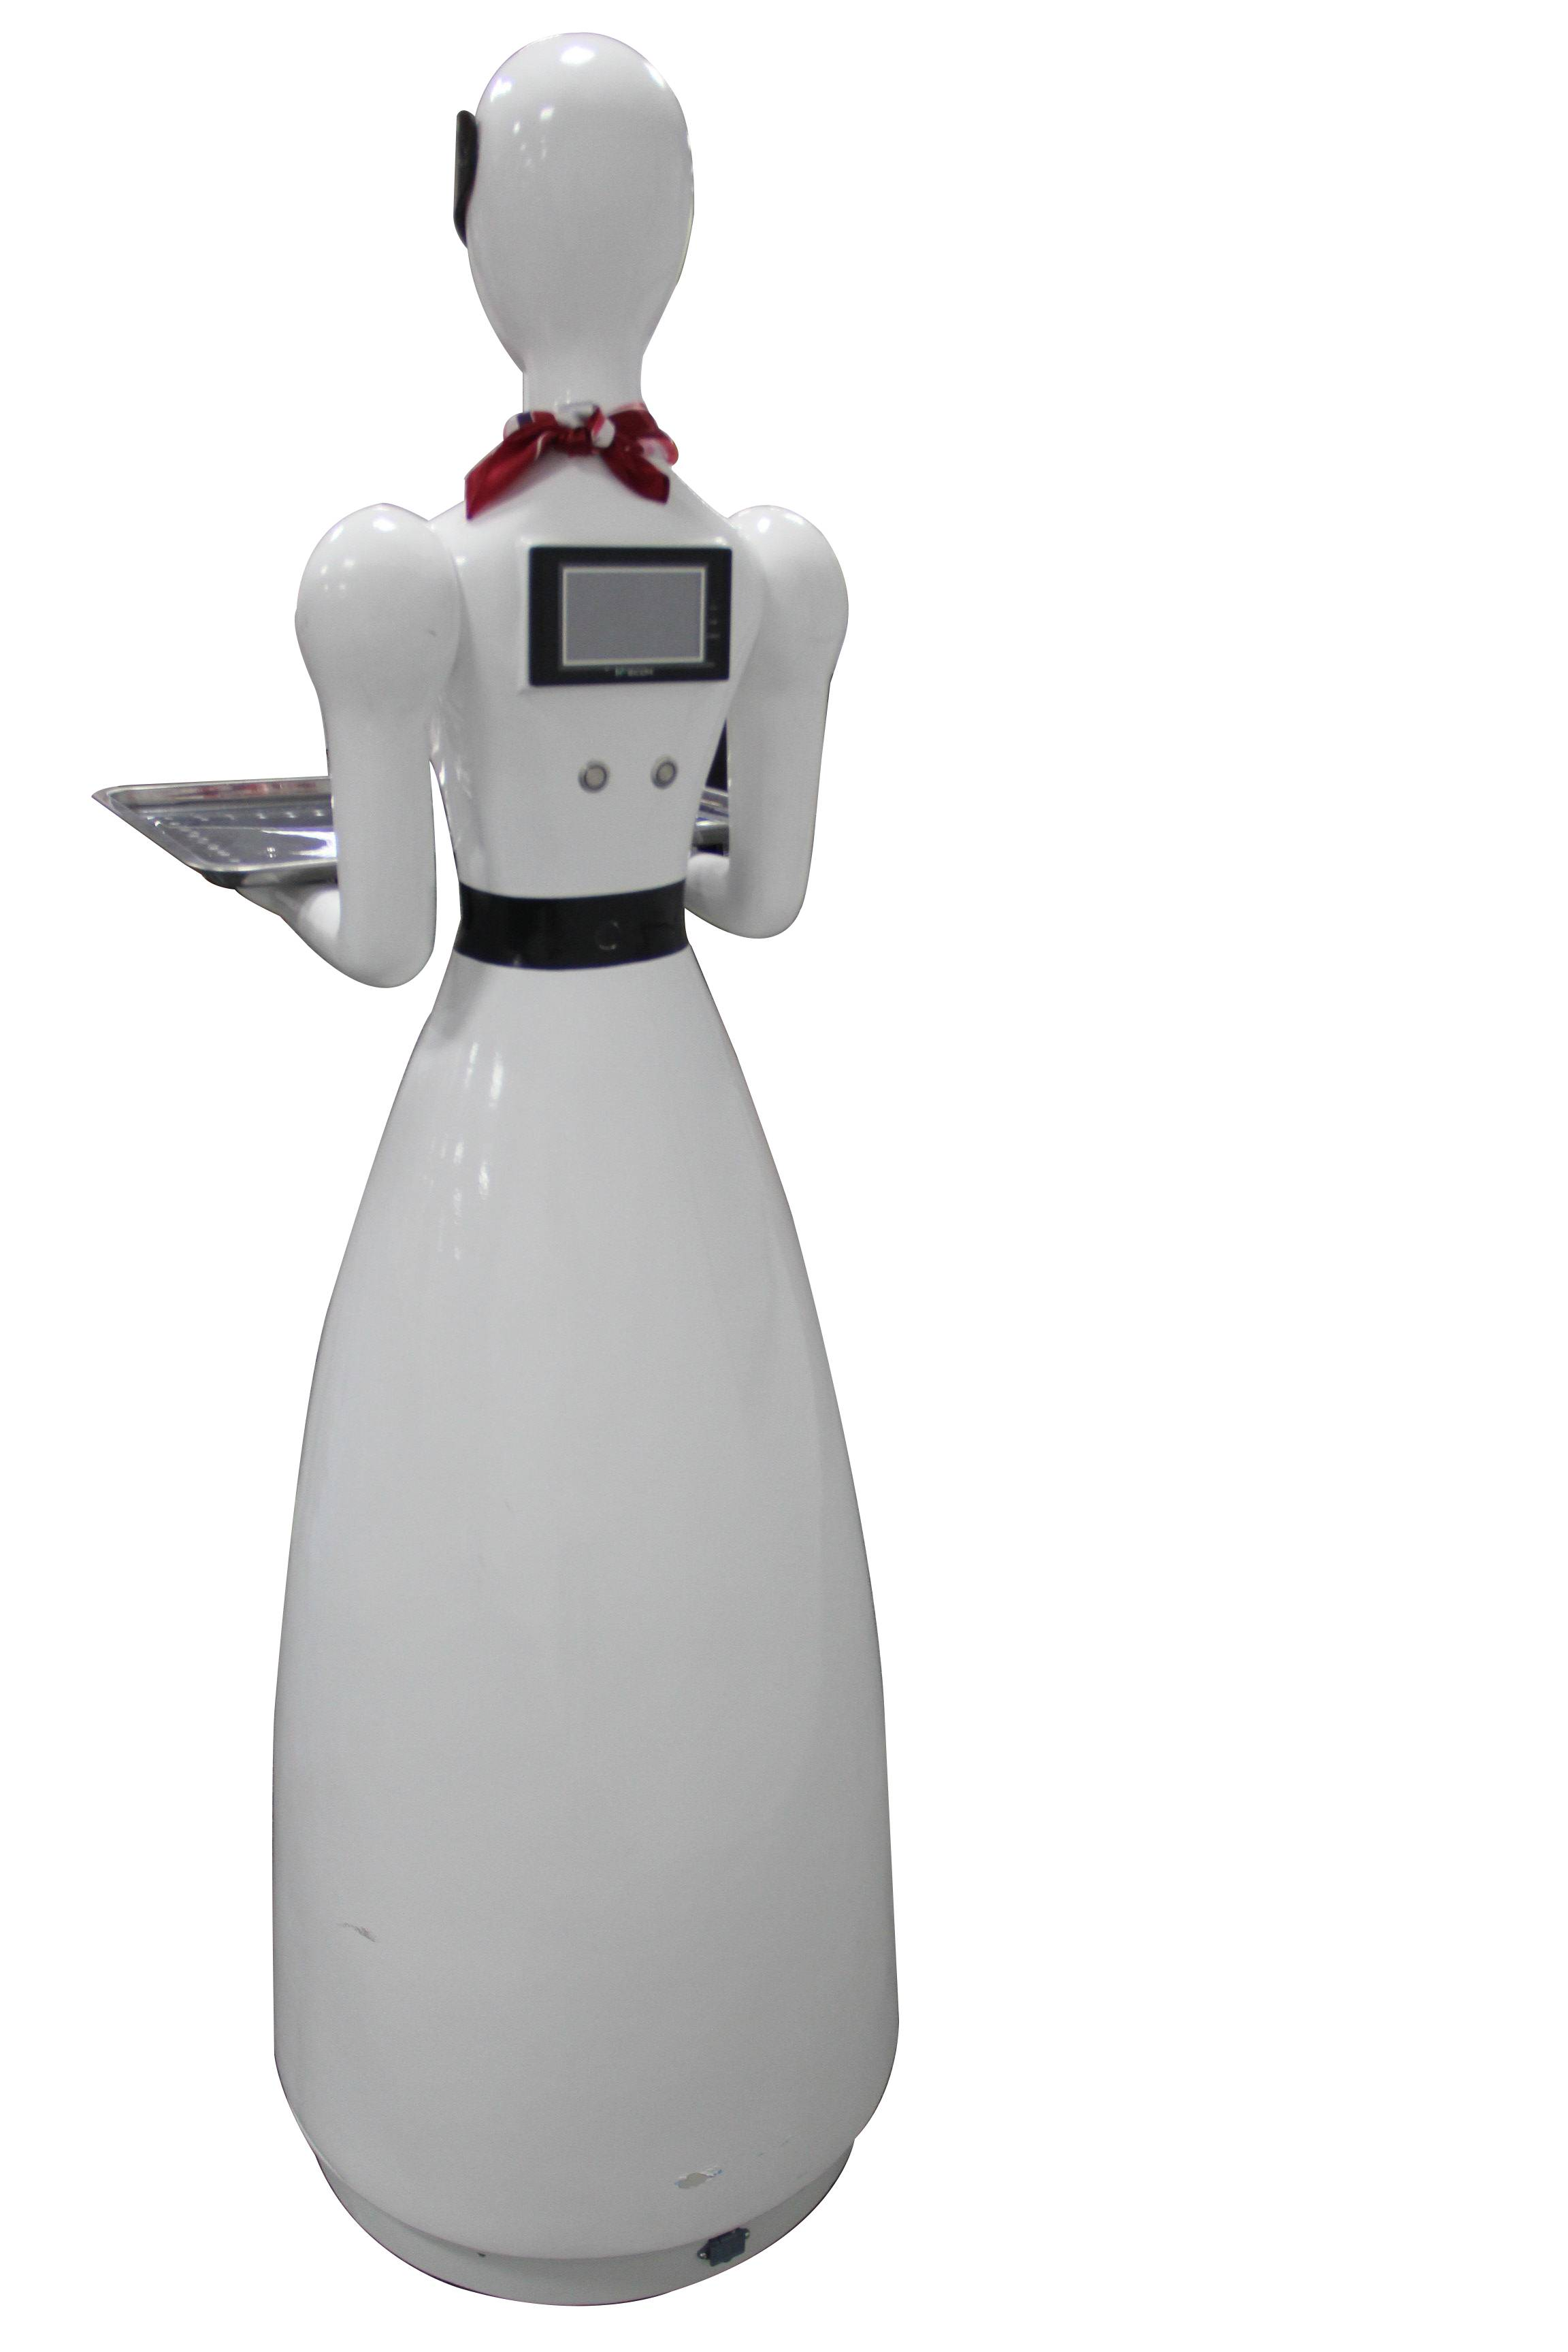 Dishes Delivering Smart Waiter Robot for Restaurant